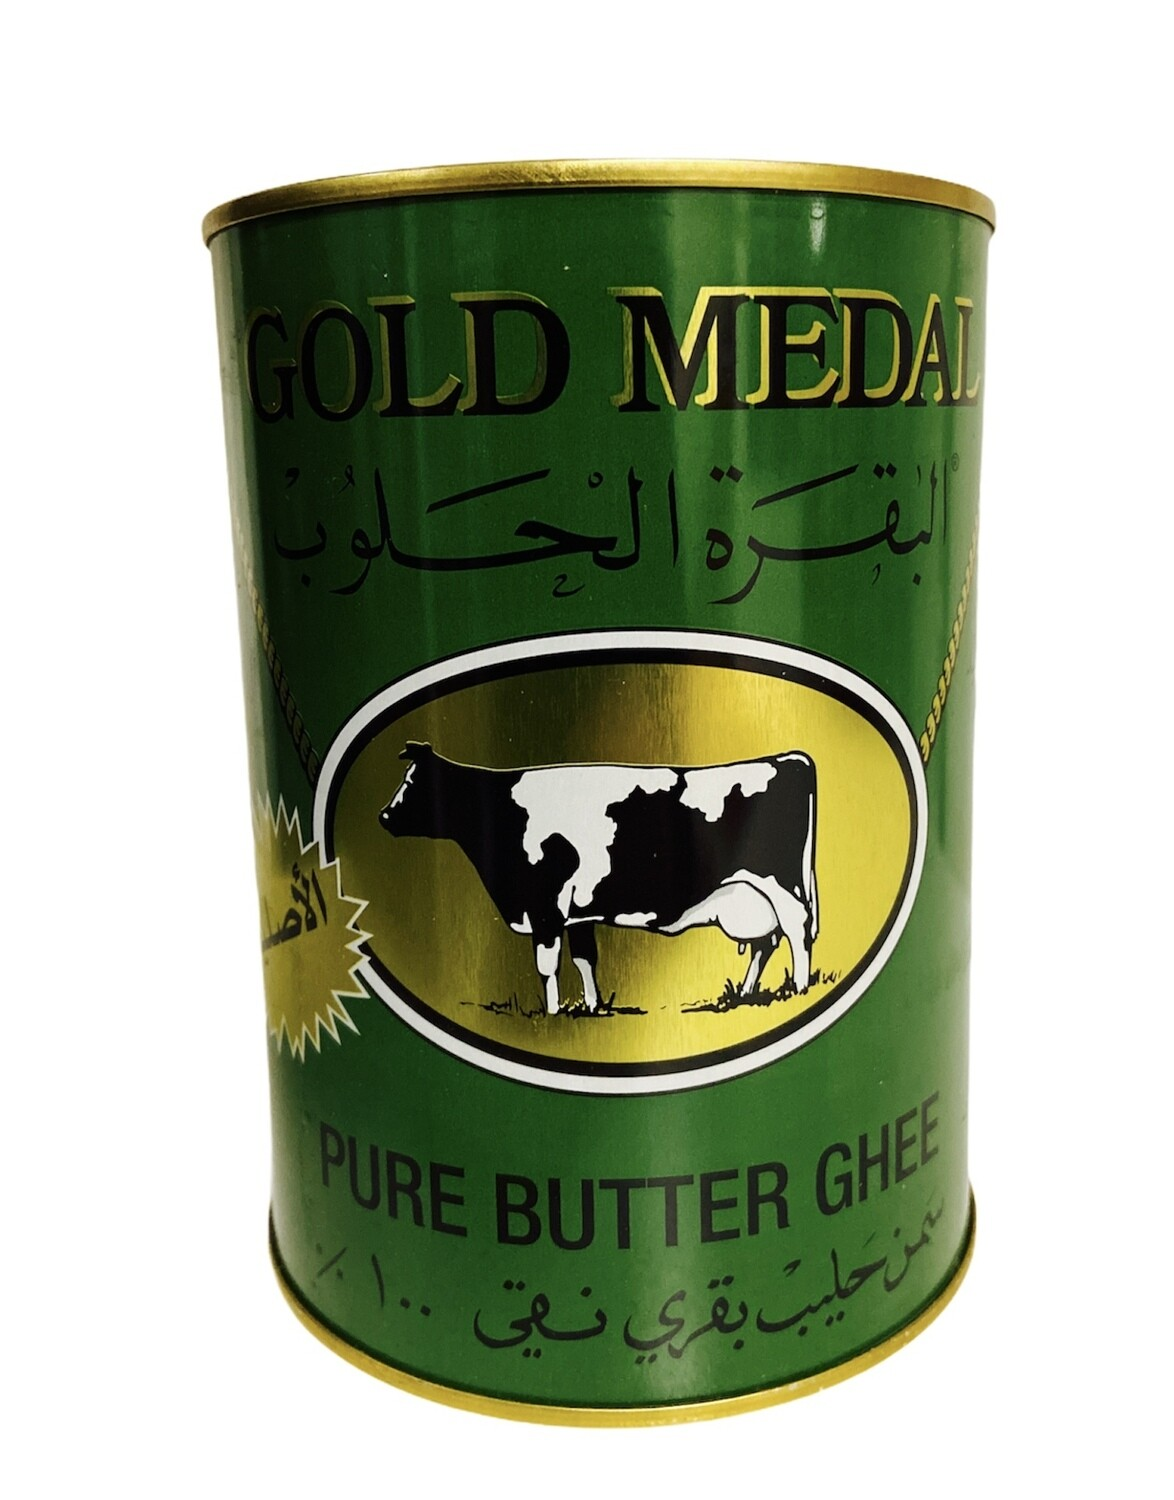 Gold Metal Pure Butter Ghee 12x